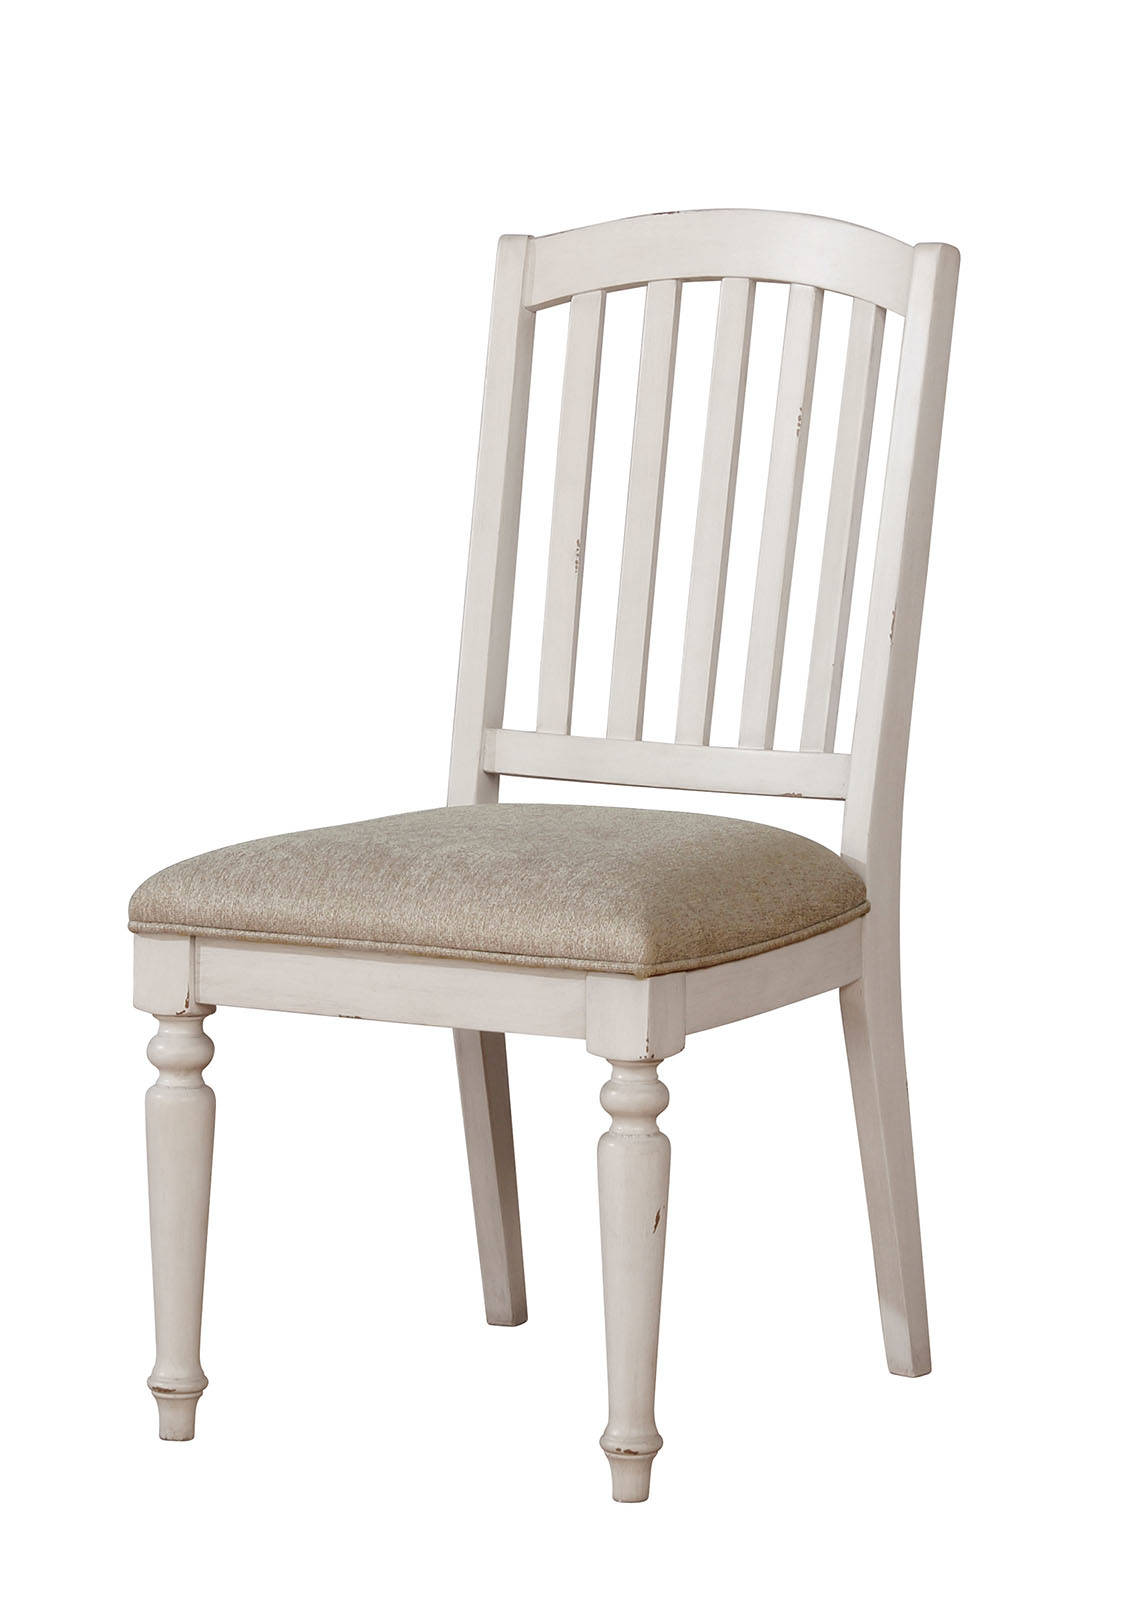 Furniture of America Summer Antique White & Gray Dining Chair Set of 2